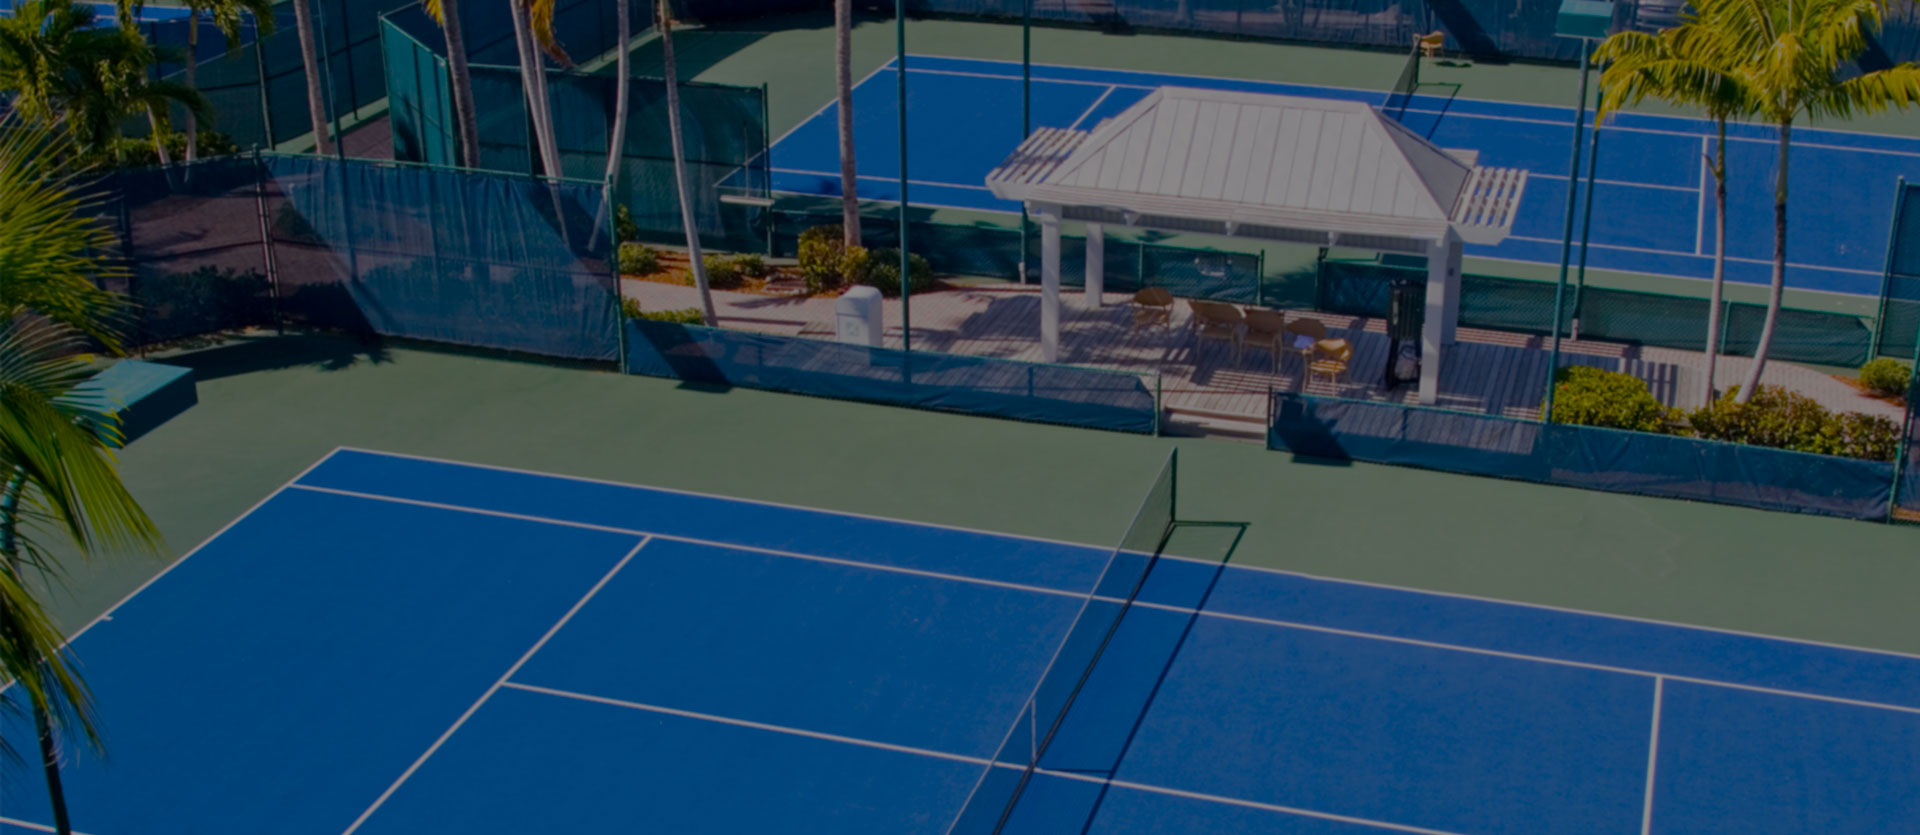 Welcome to Florida Net Company | Shop Professional Sports Netting and Equipment